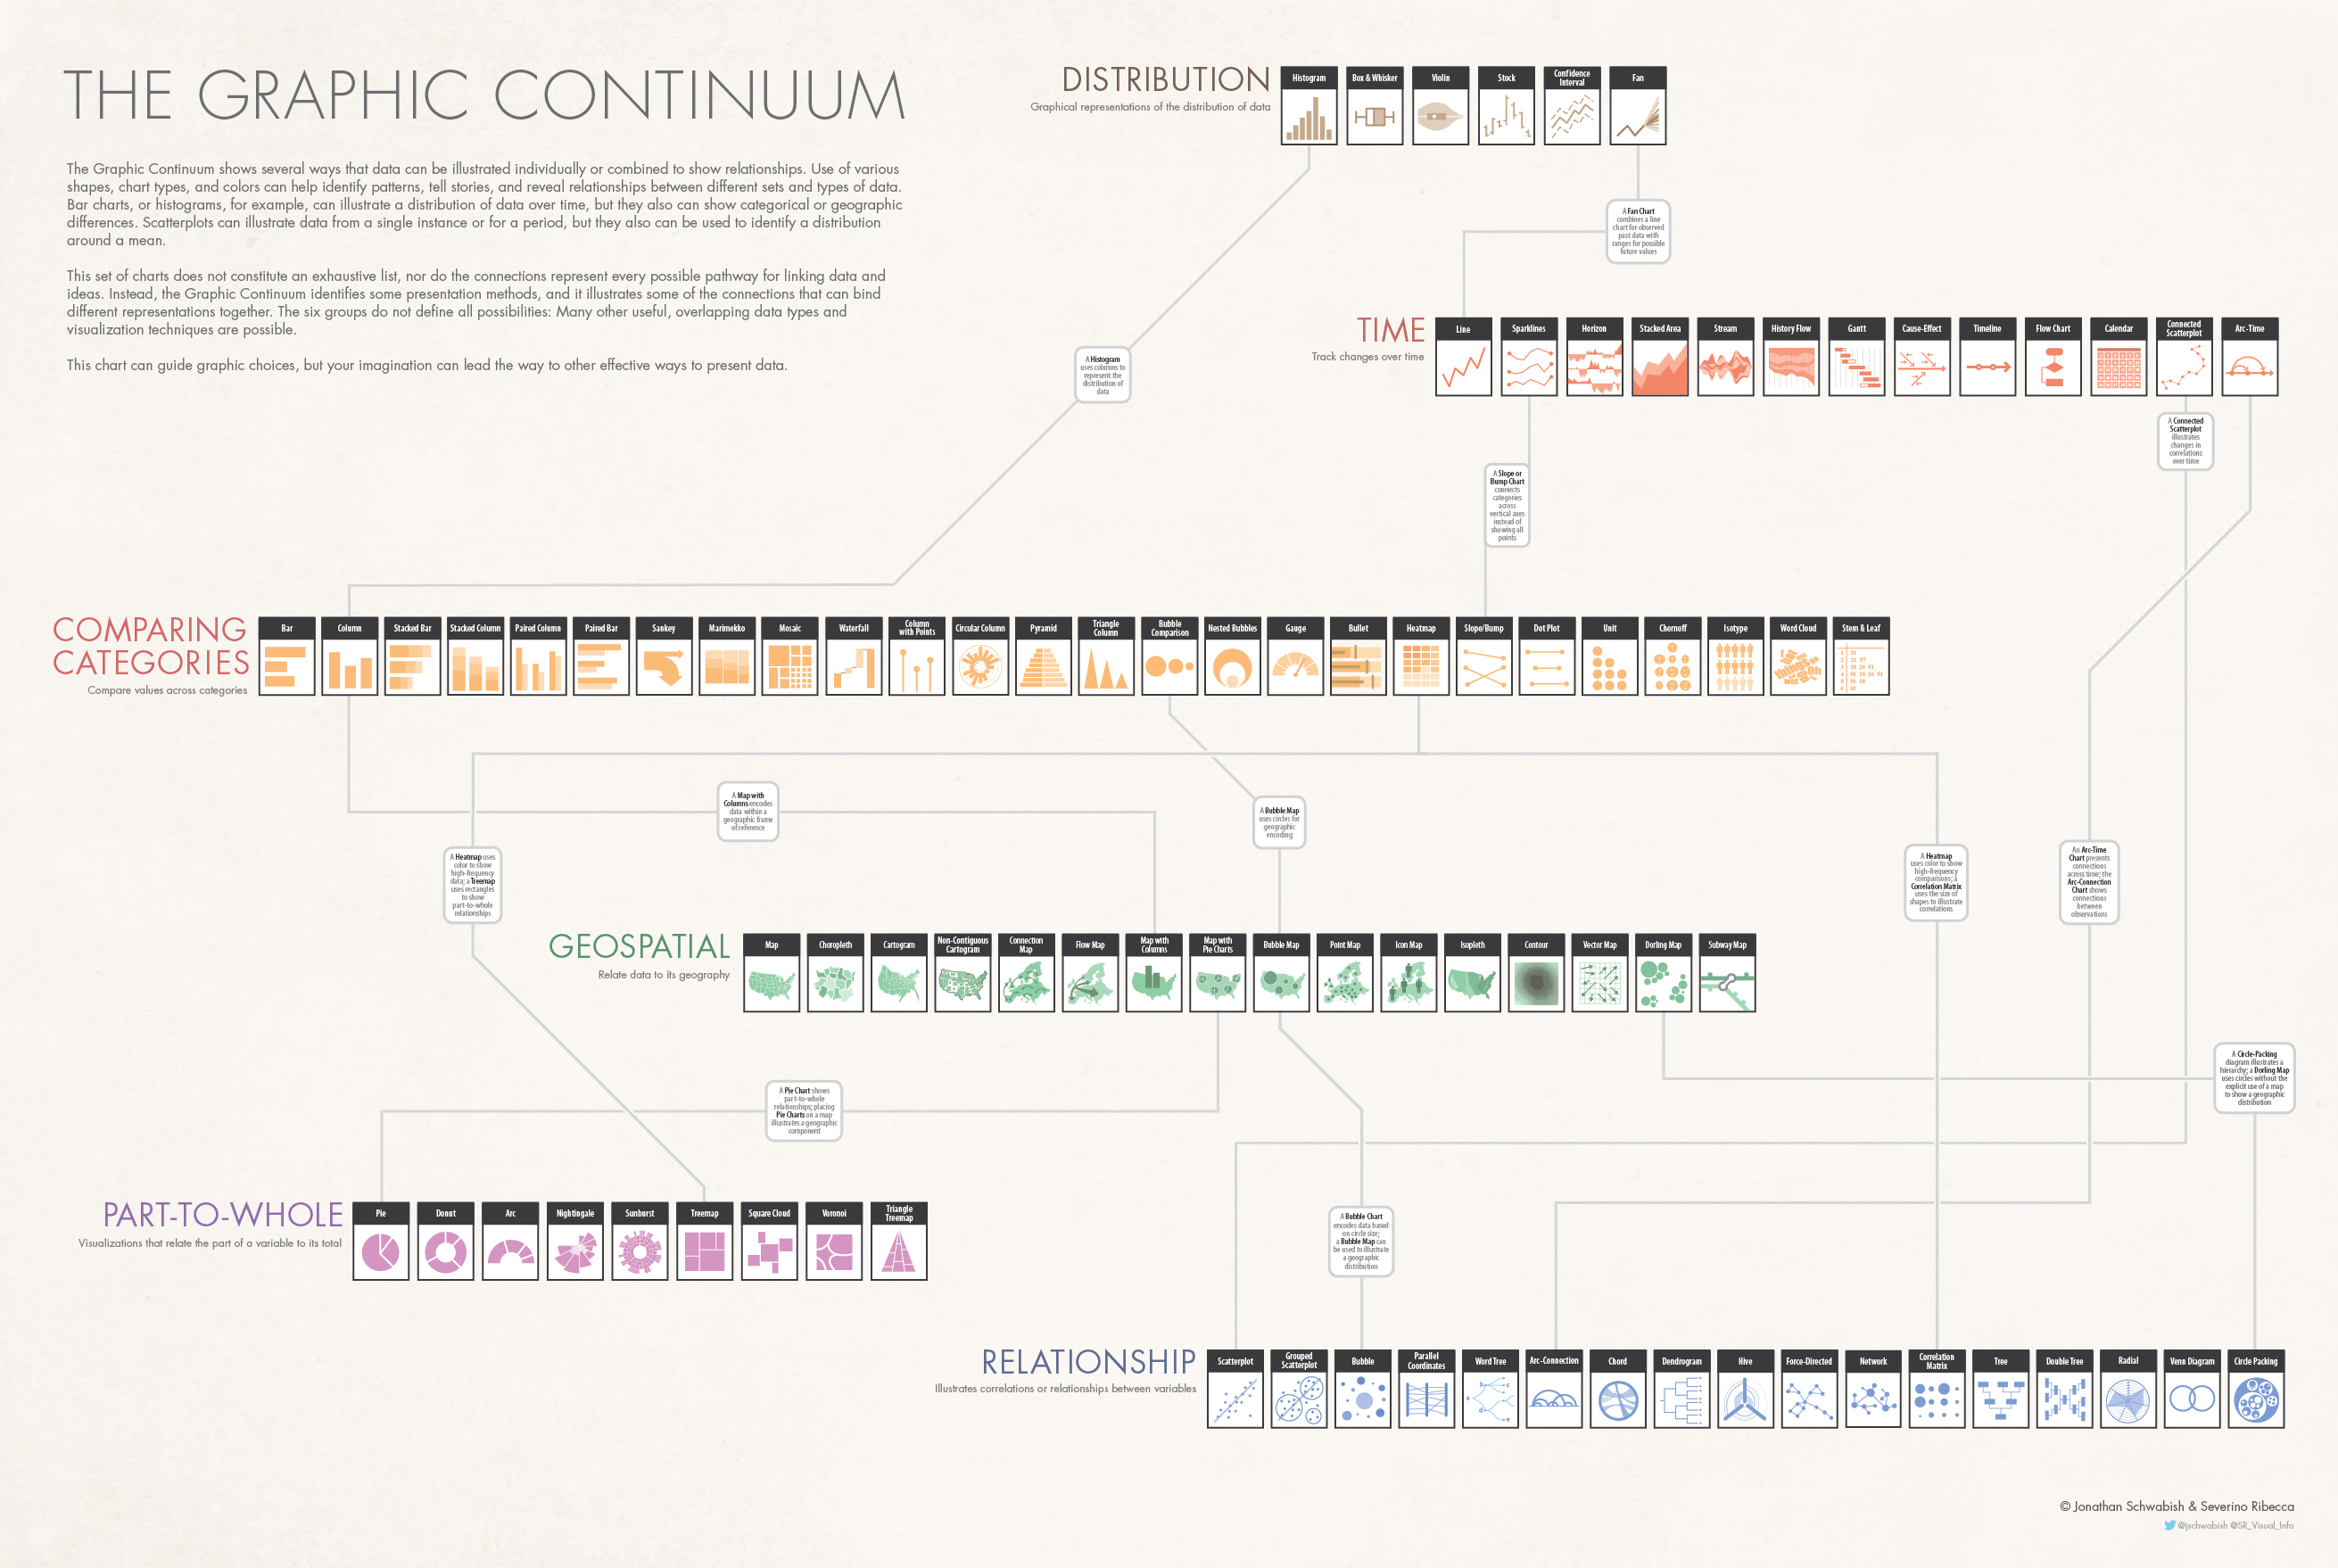 Data visualisation - the graphic continuum